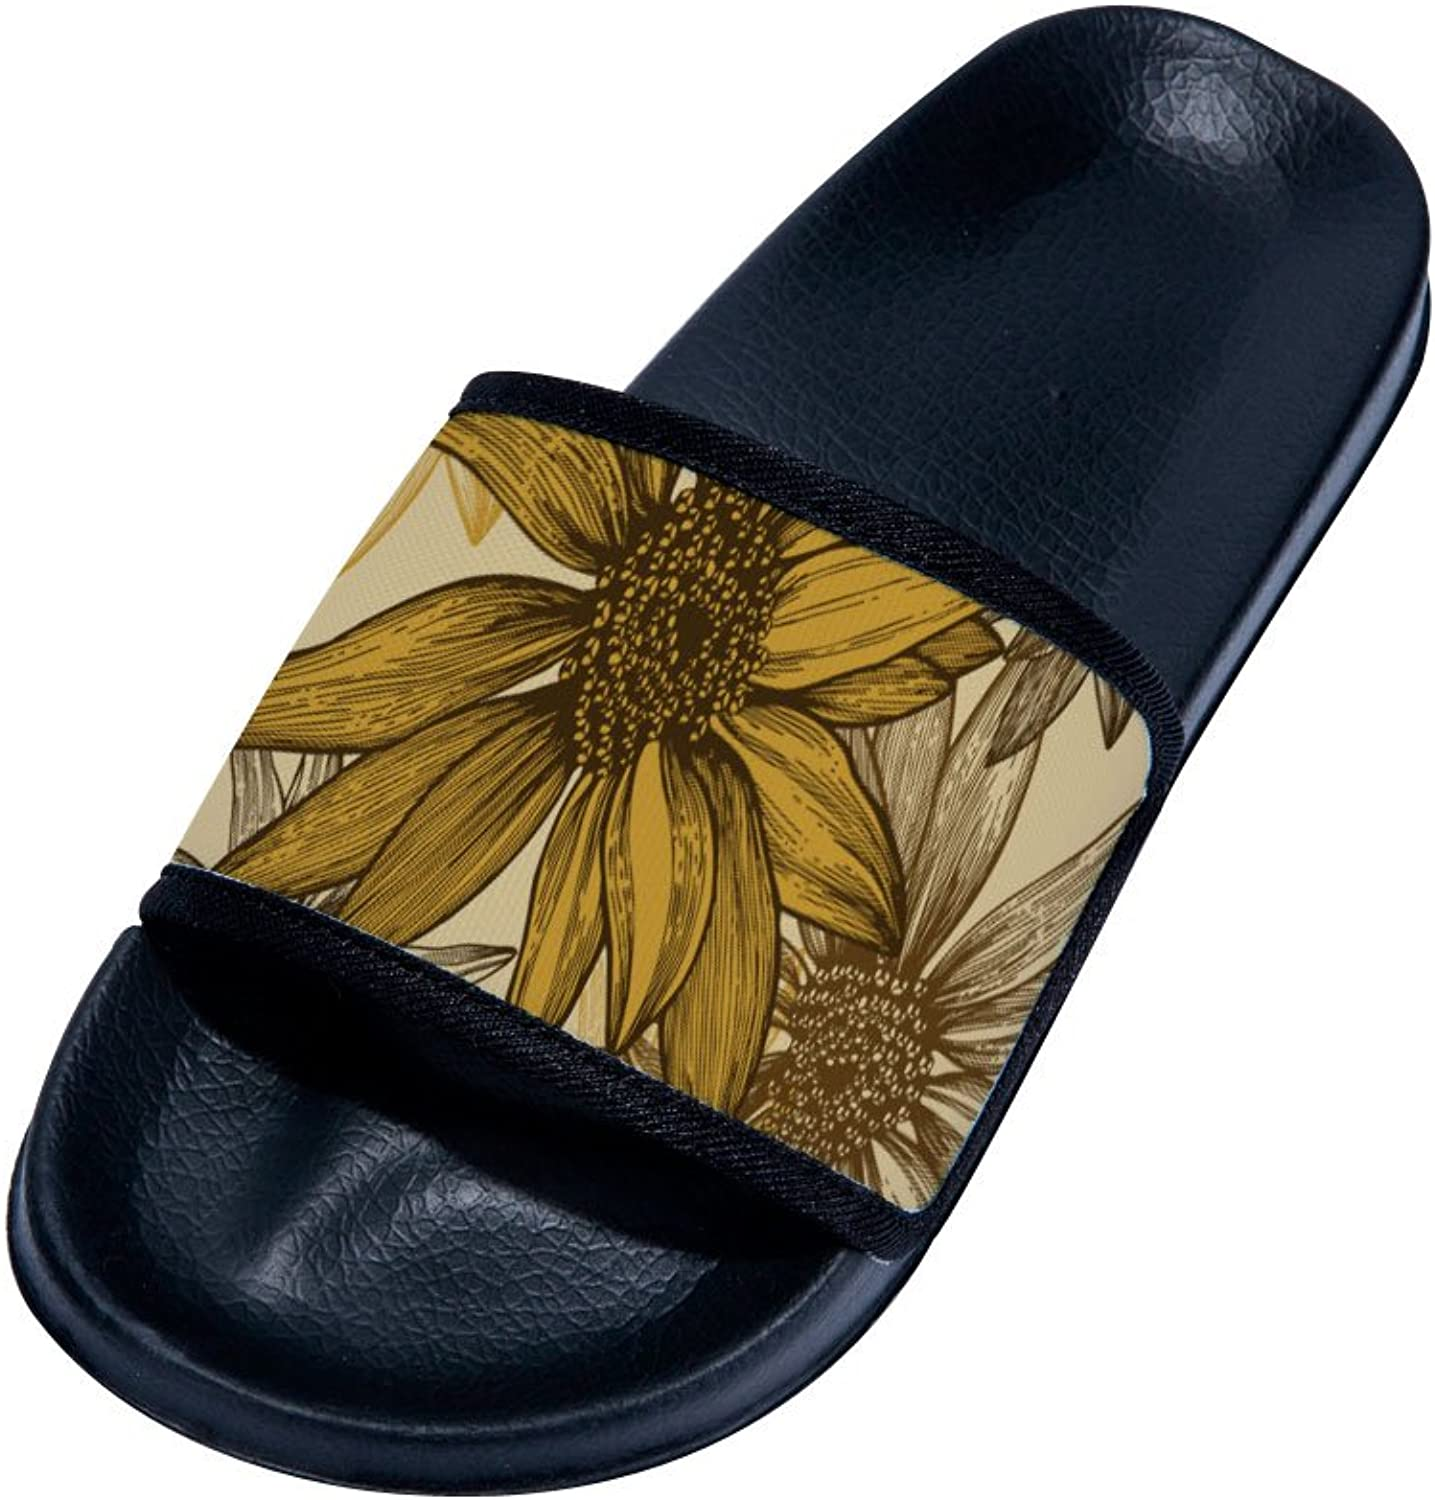 Buteri Sunflowers Summer Breathable Quick-Drying Non-Slip Slippers